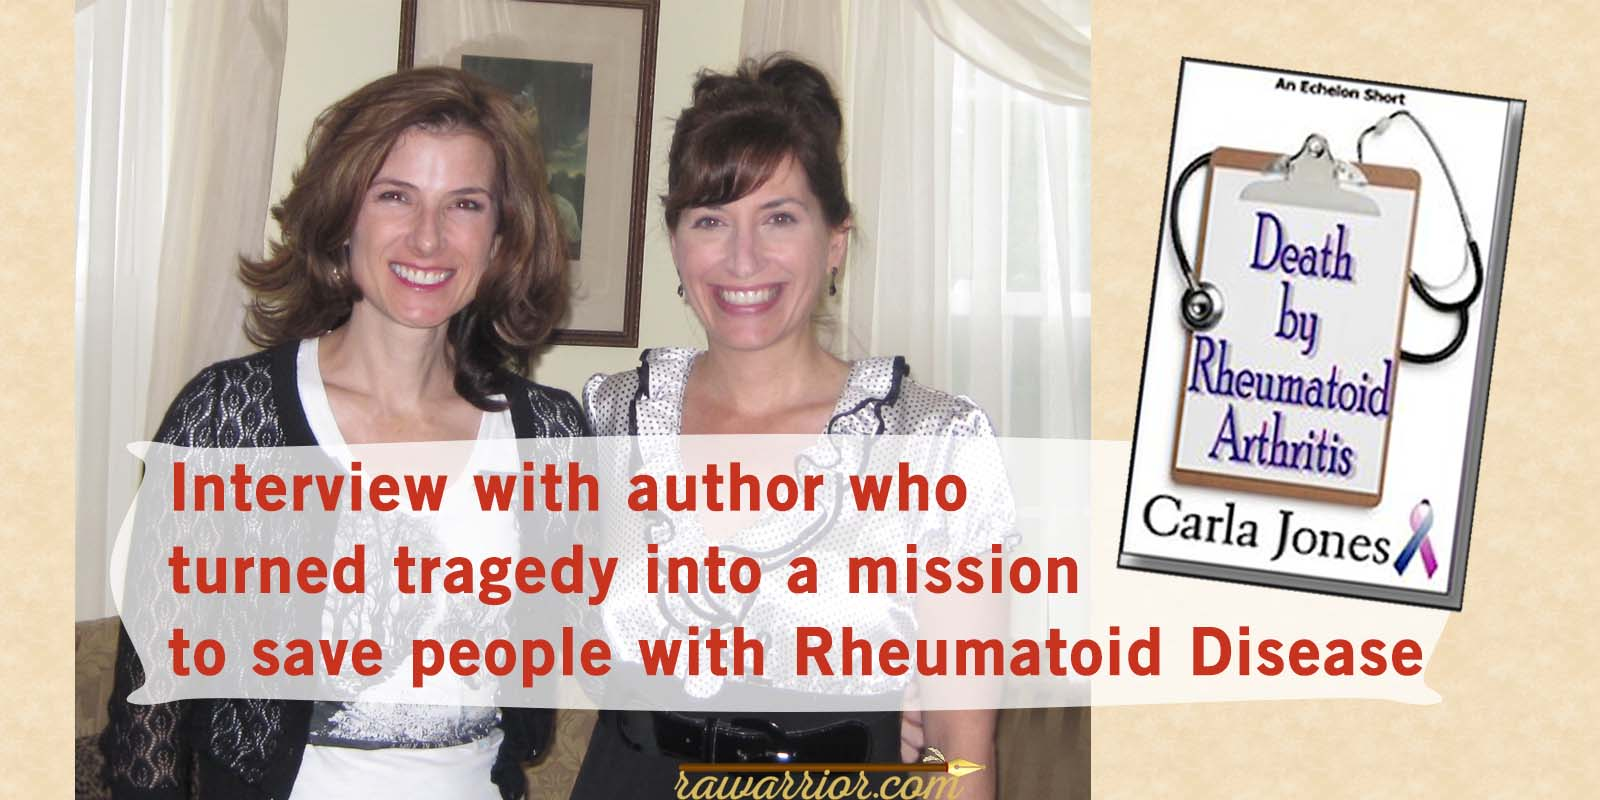 Death by Rheumatoid Arthritis interview